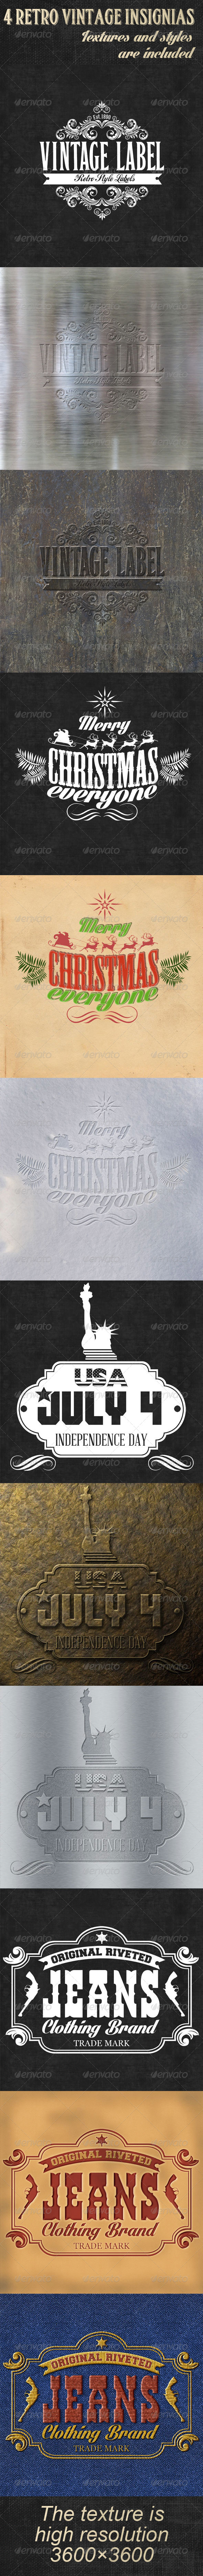 GraphicRiver 4 Retro Vintage Insignias 6422751